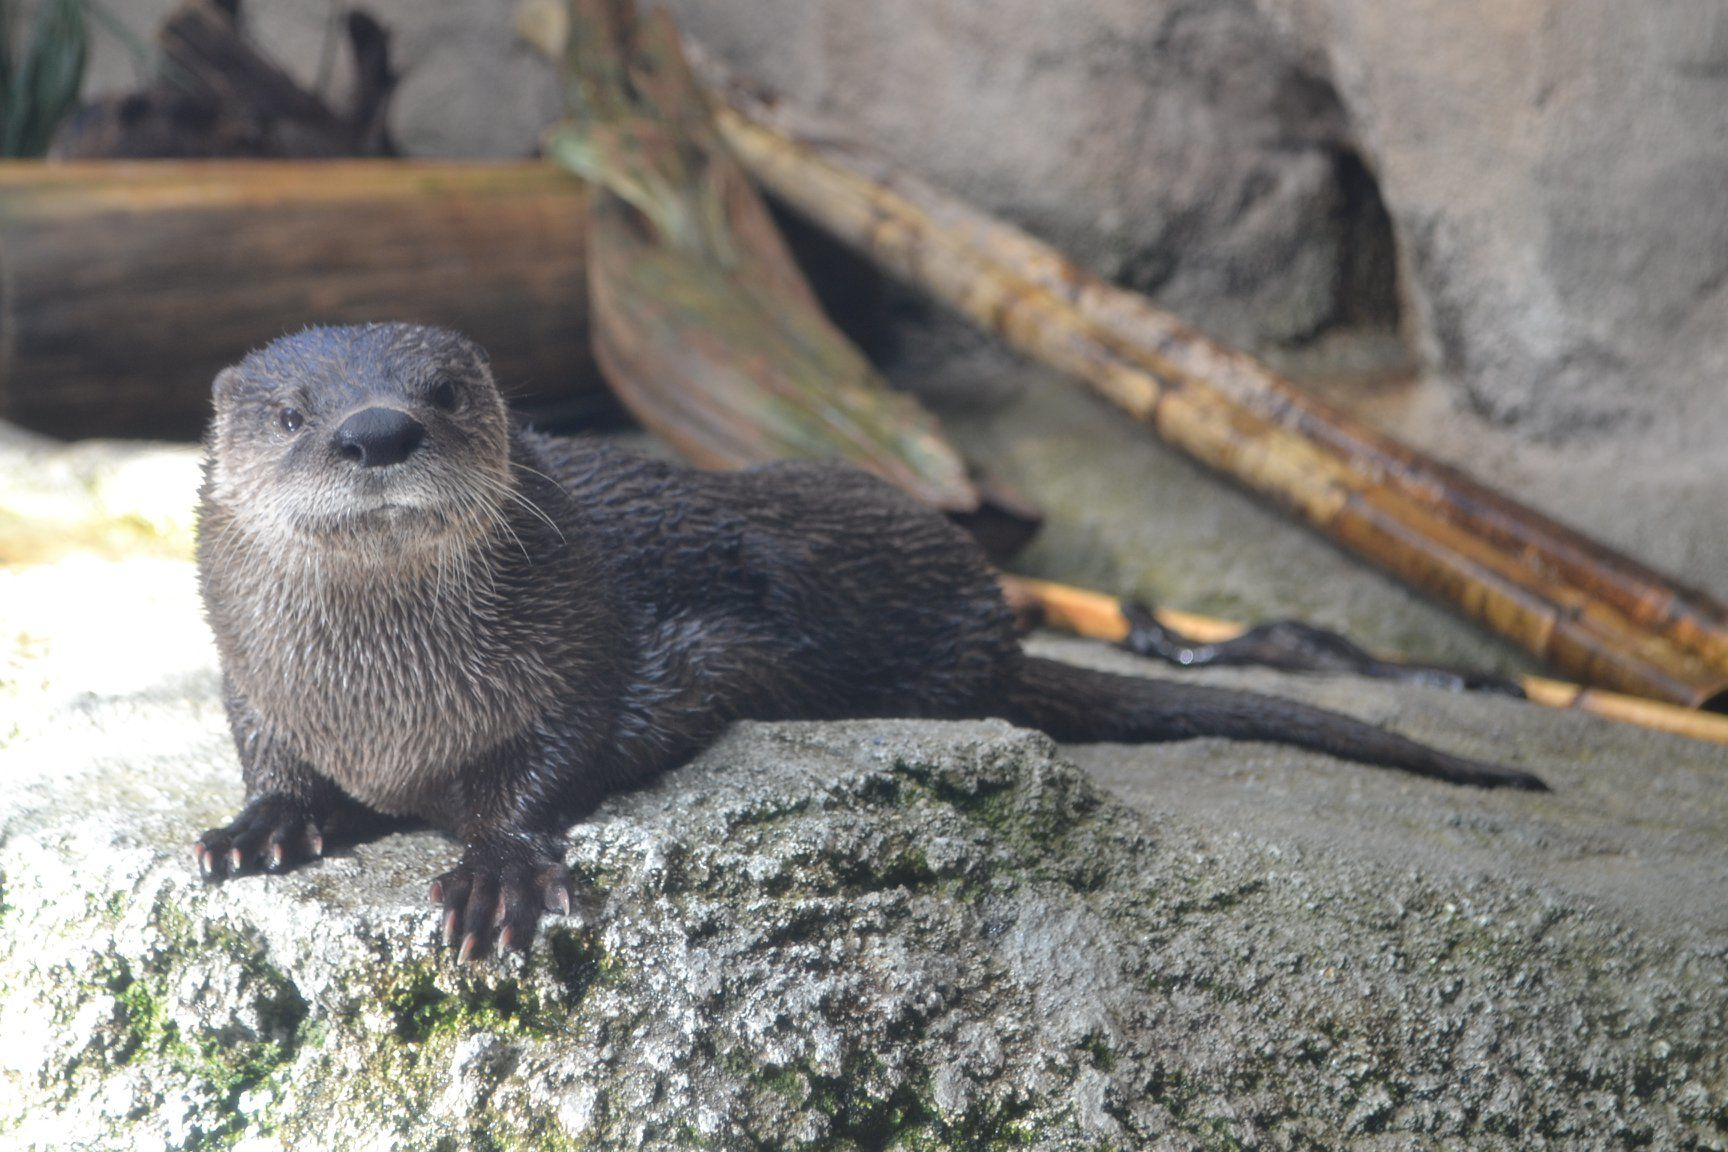 North Carolina Aquarium Mourns Loss of Famous River Otter